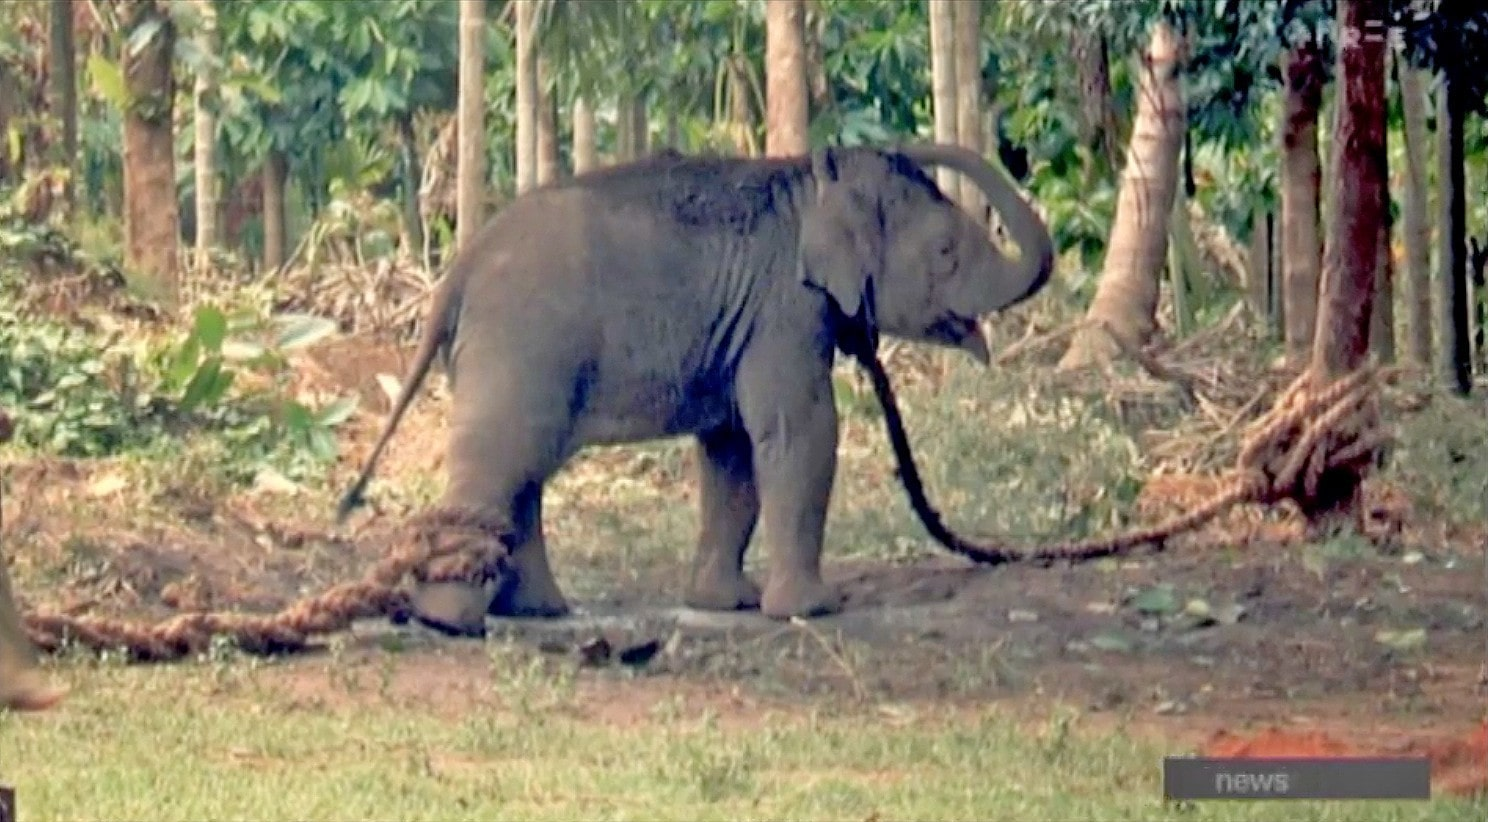 Don't ride elephants in Thailand – warning to Kiwi tourists | The Thaiger